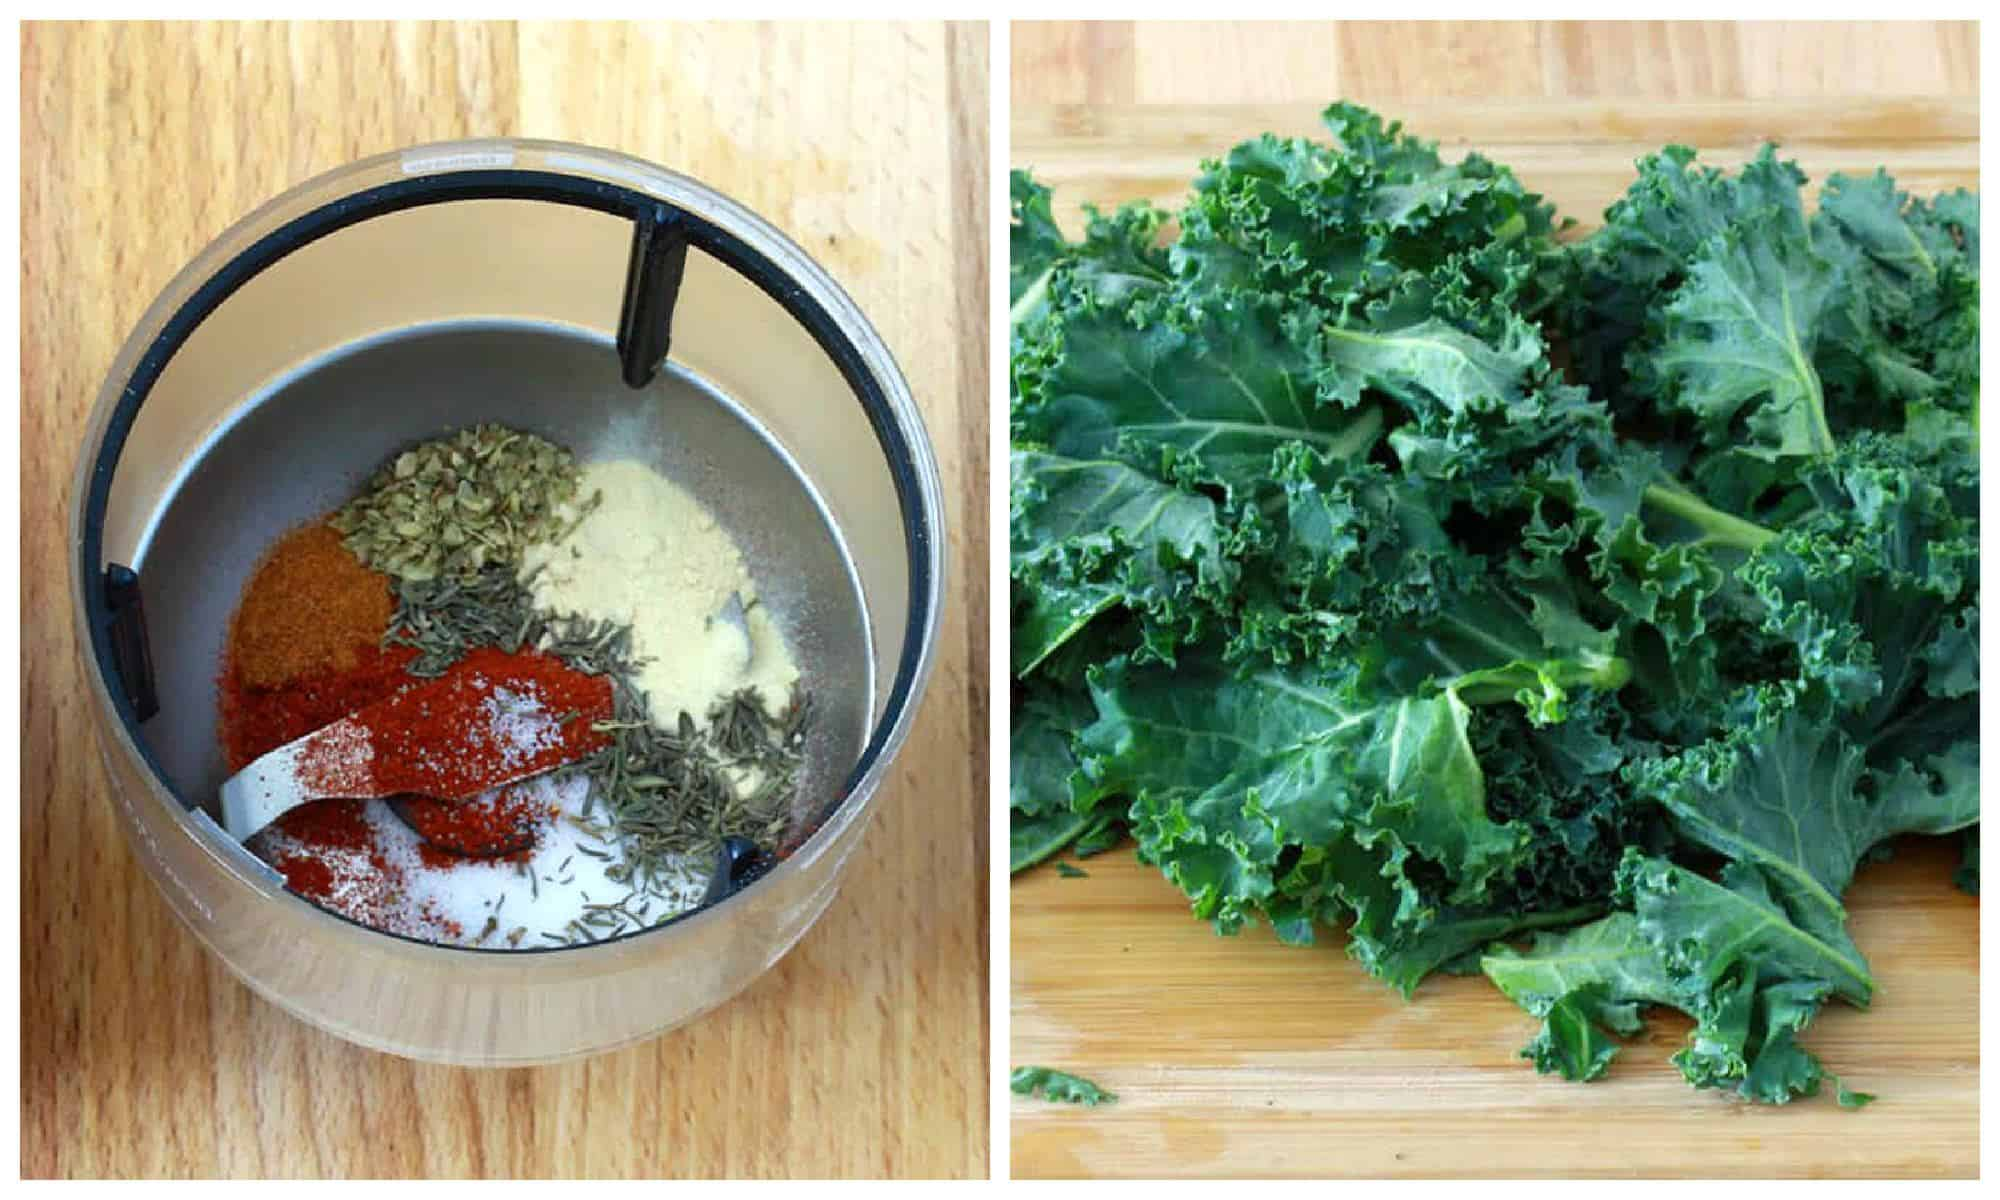 making Cajun seasoning and chopping kale